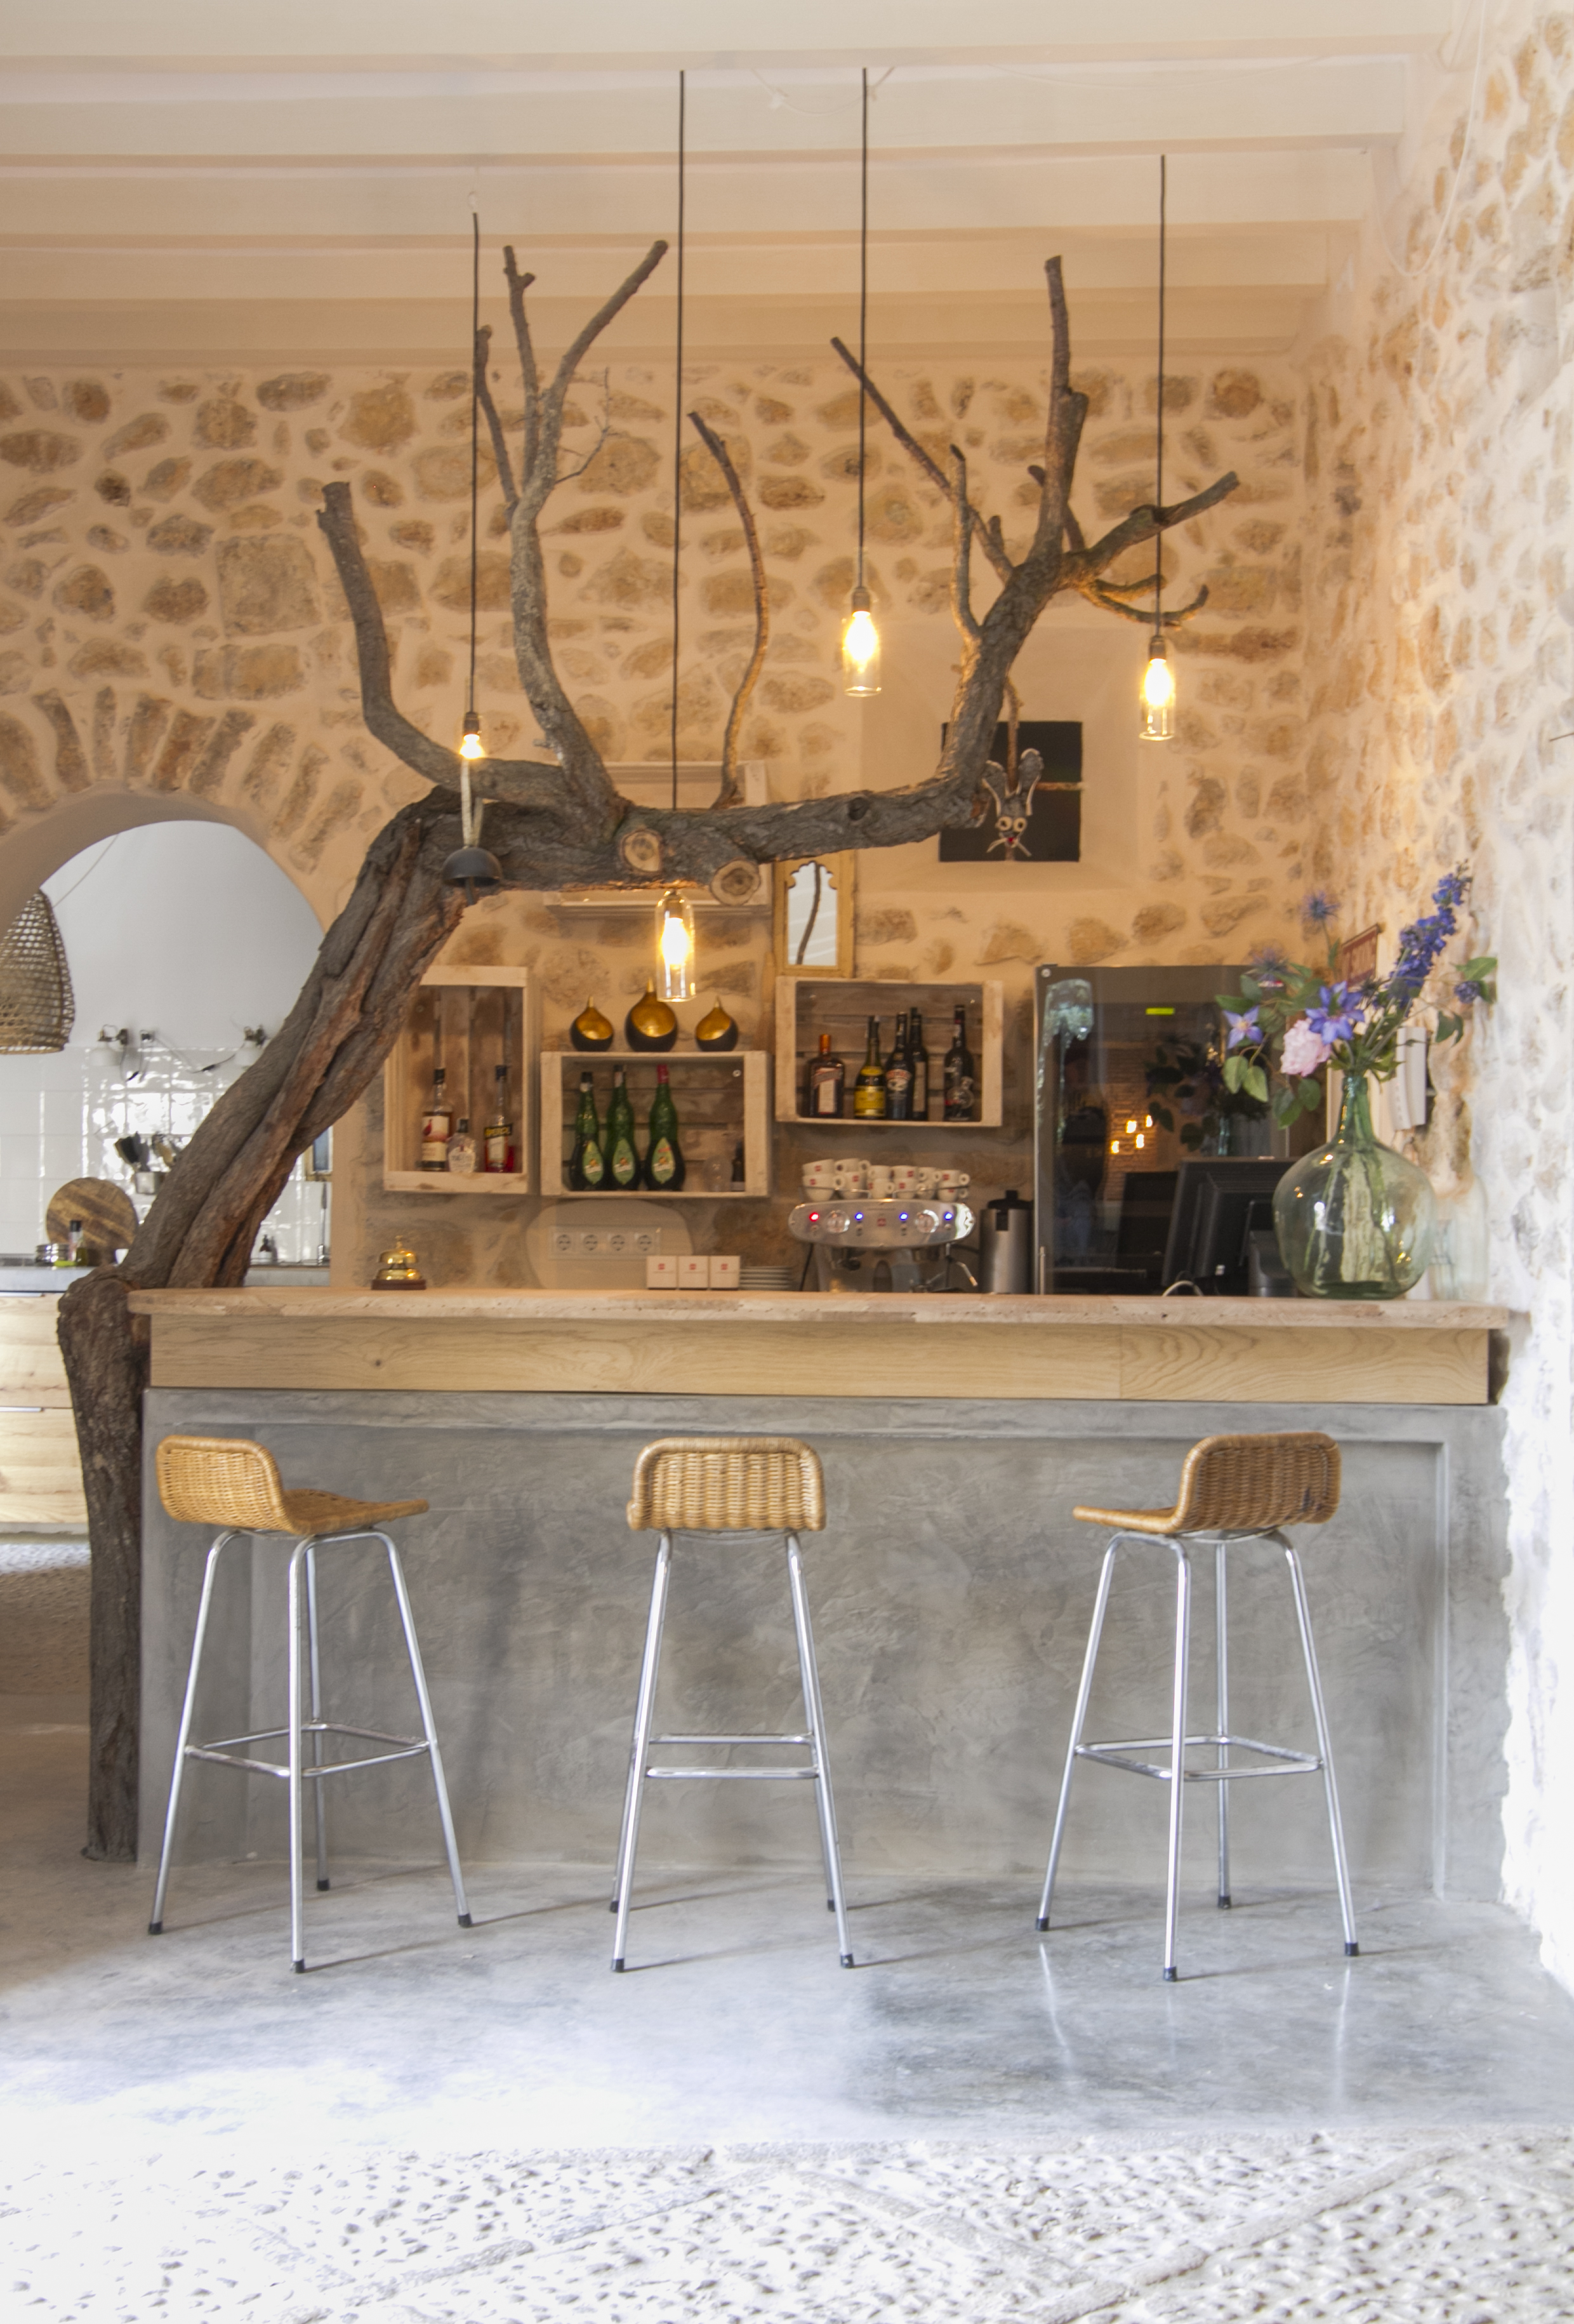 The pink pepper tree bar